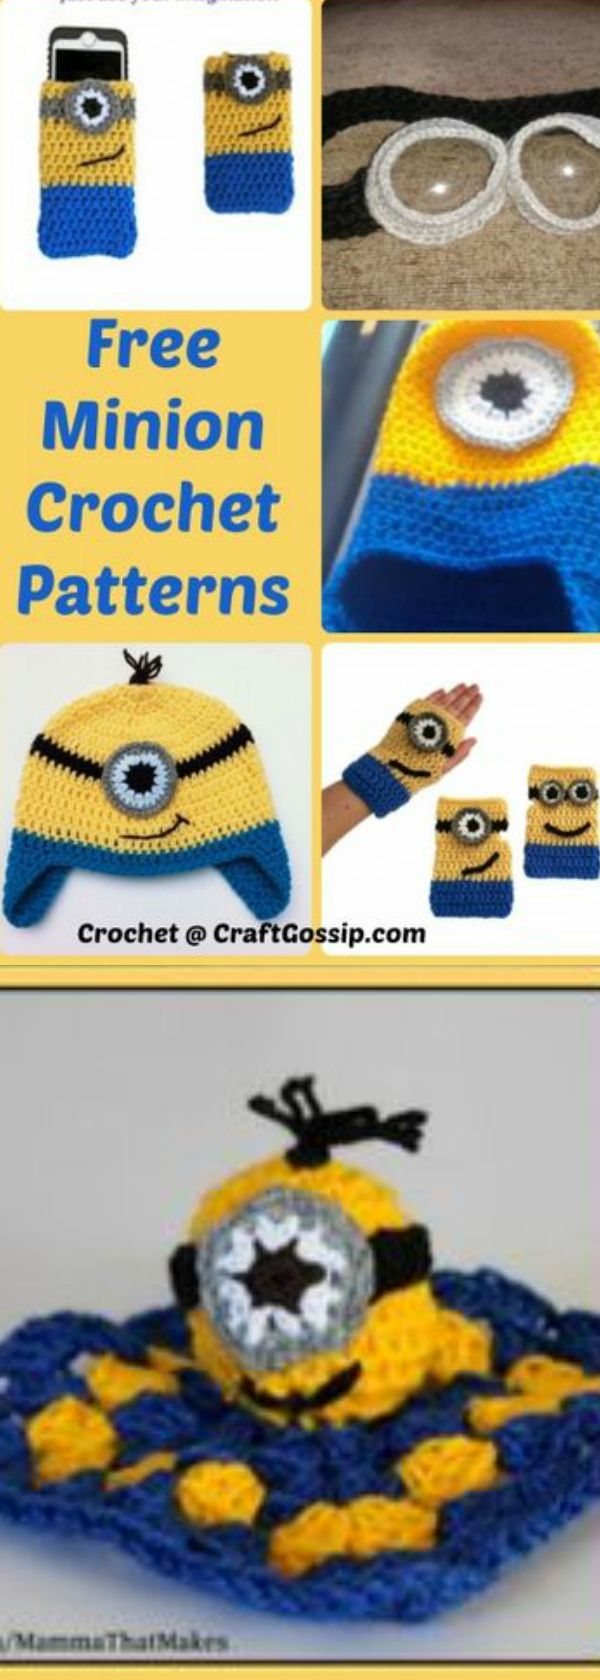 The 25 best minion crochet patterns ideas on pinterest crochet free crochet patterns for minion crochet toys and beanie crochet pattern bankloansurffo Image collections